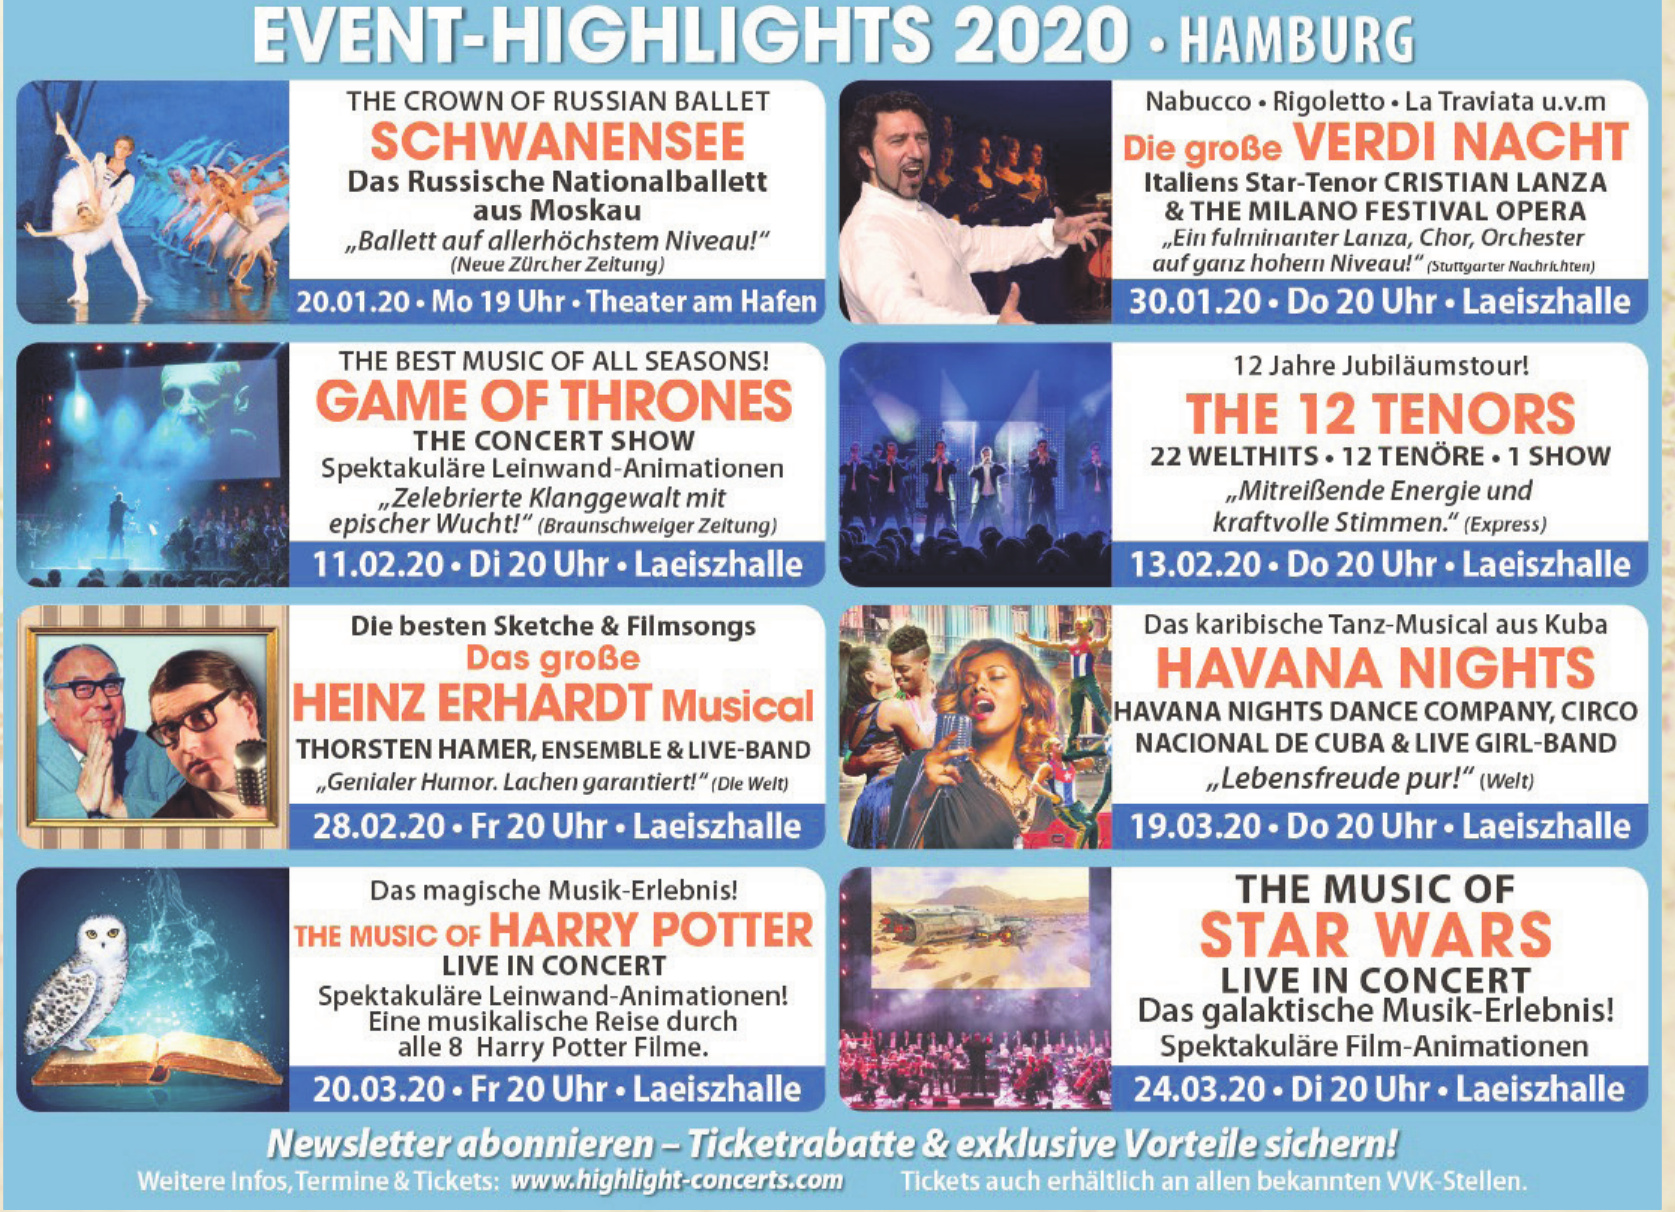 Event-Highlights 2020